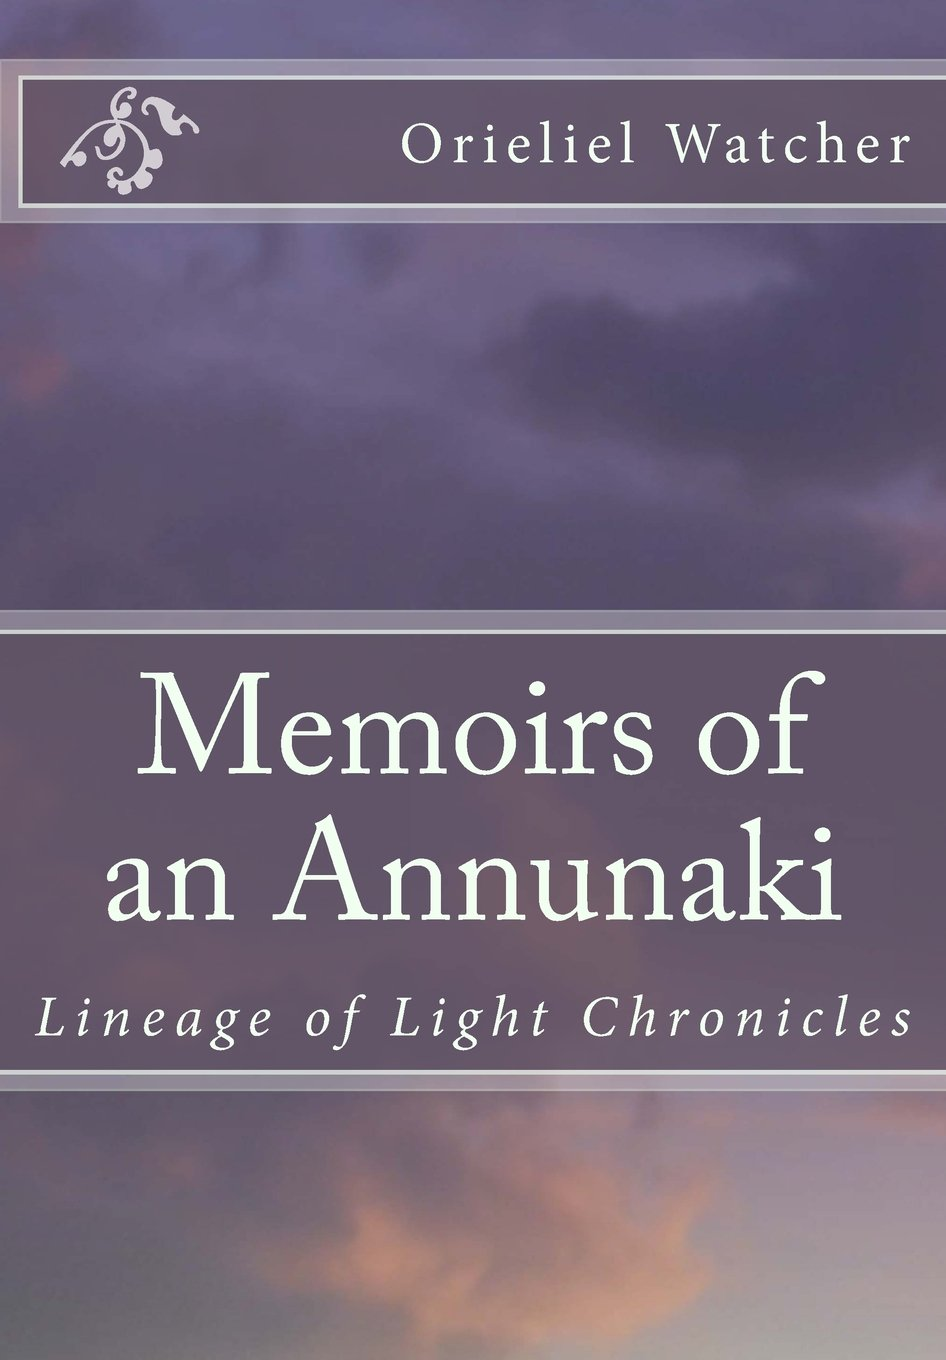 Download Memoirs of an Annunaki (Lineage of Light Chronicles) (Volume 1) PDF